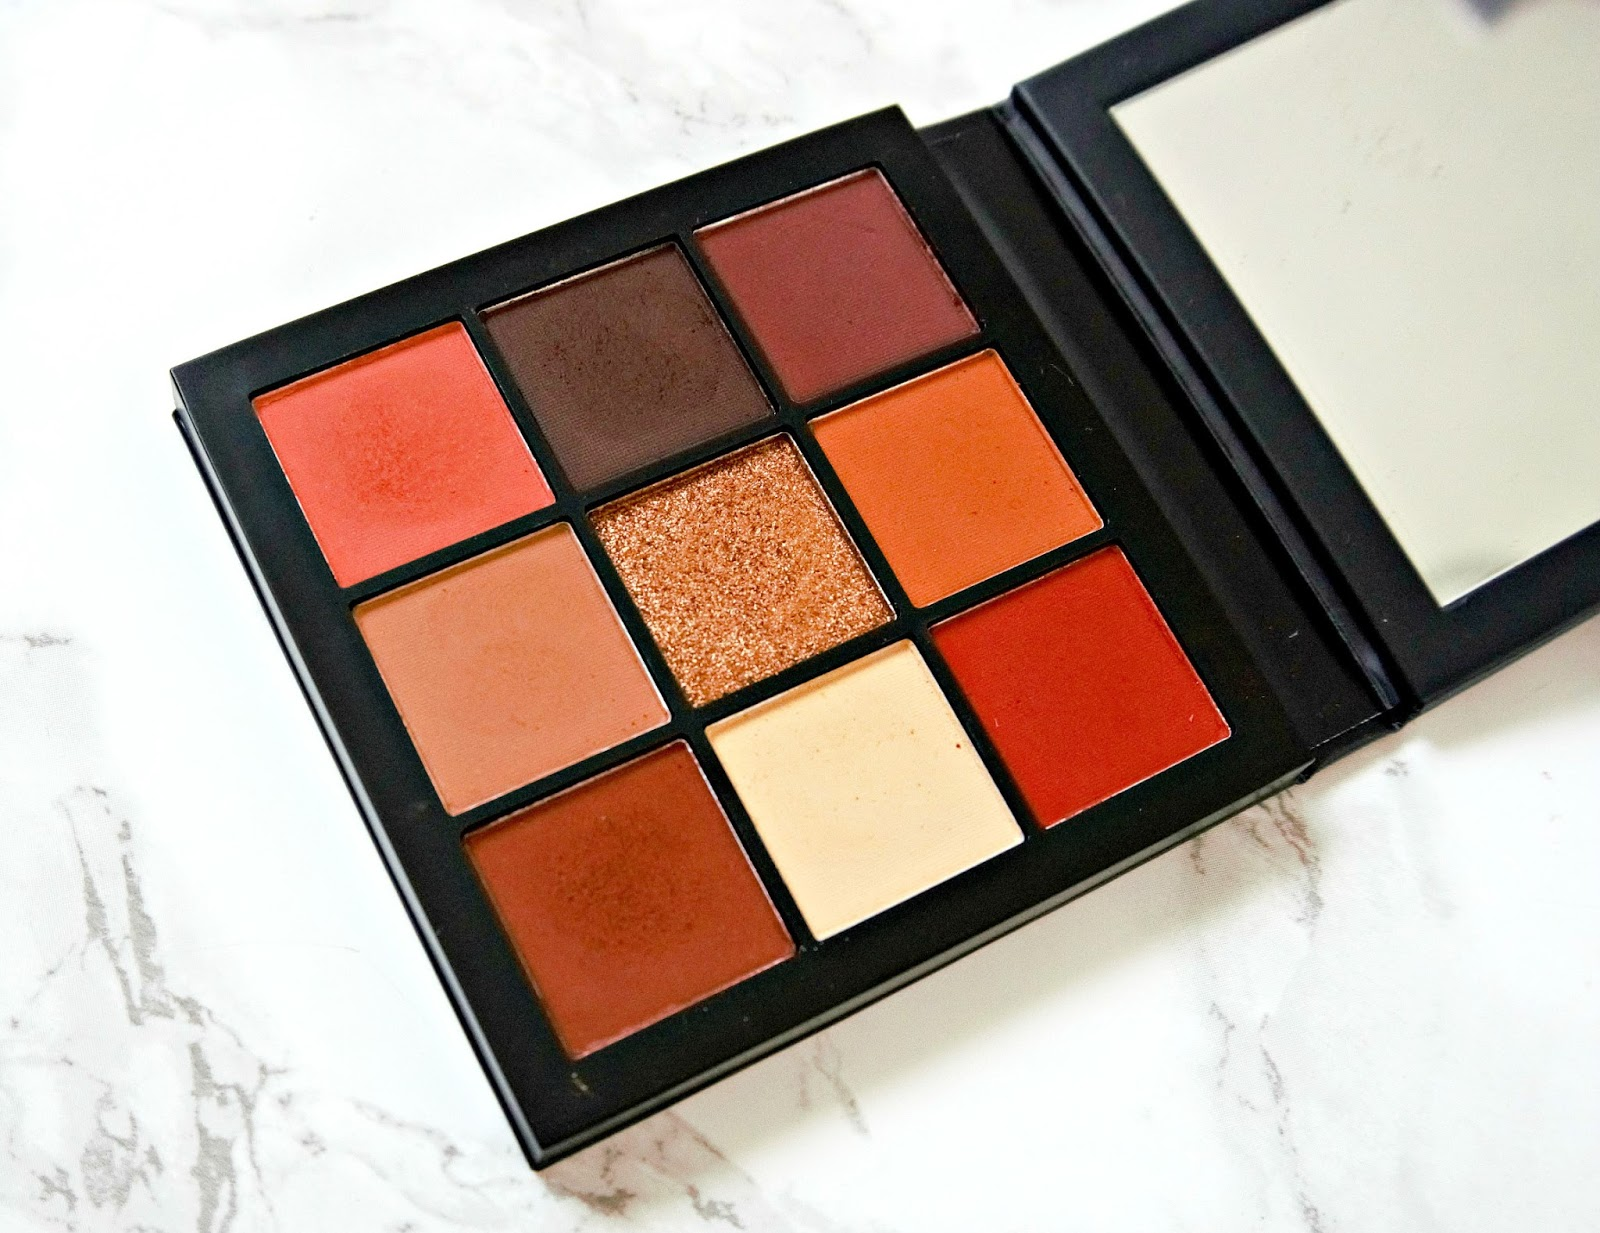 Huda Mini Palette, Warm Brown Obsessions, Review